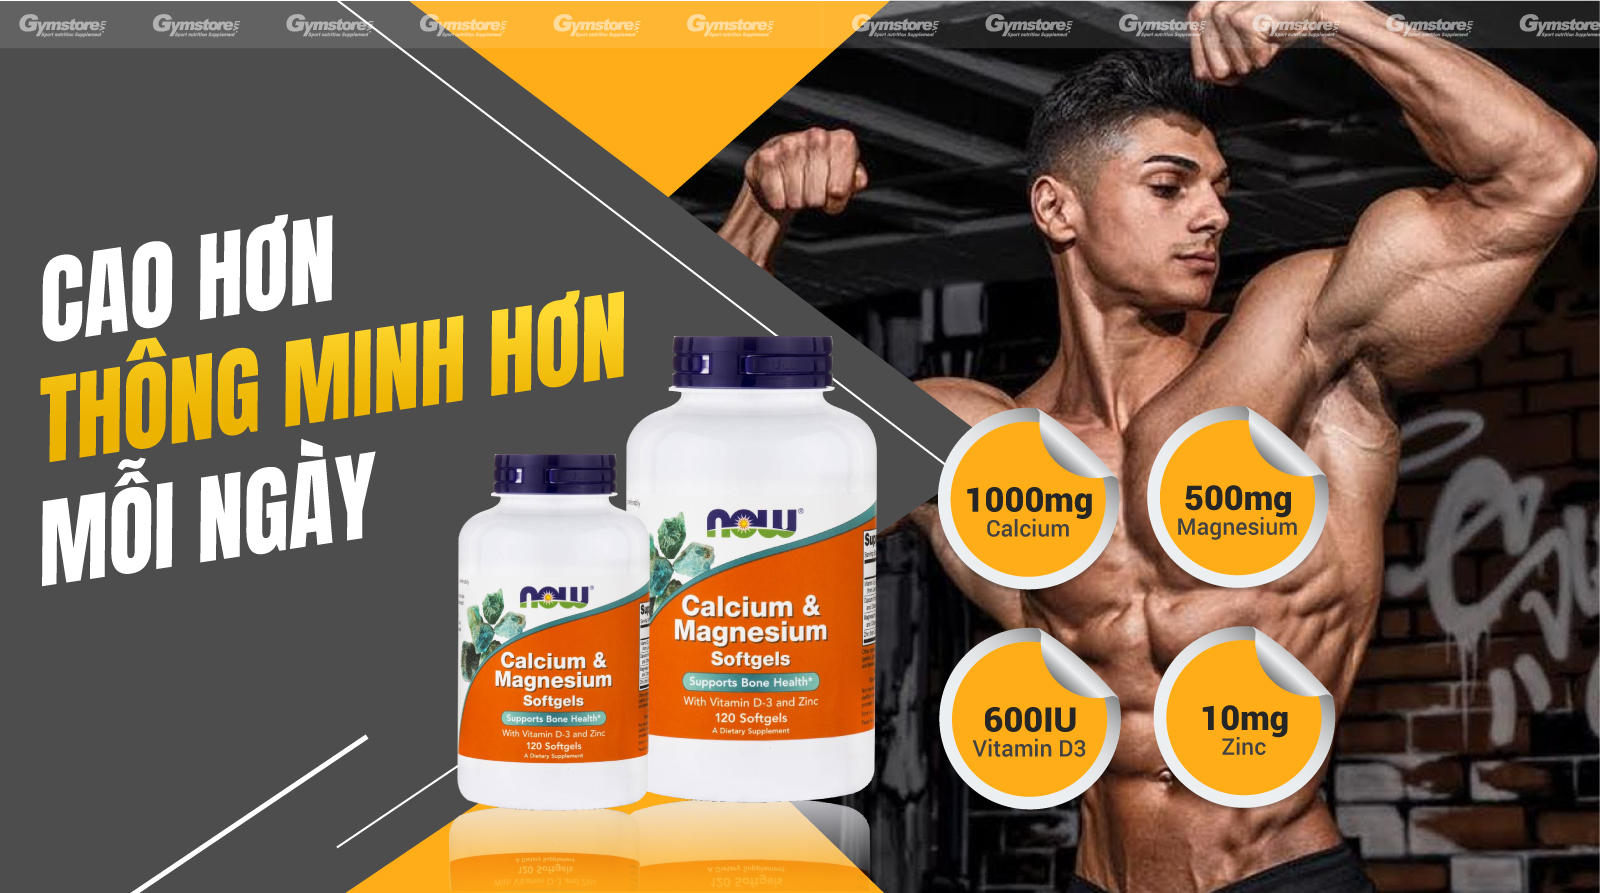 Now-calcium-magnesium-bổ-sung-canxi-gymstore